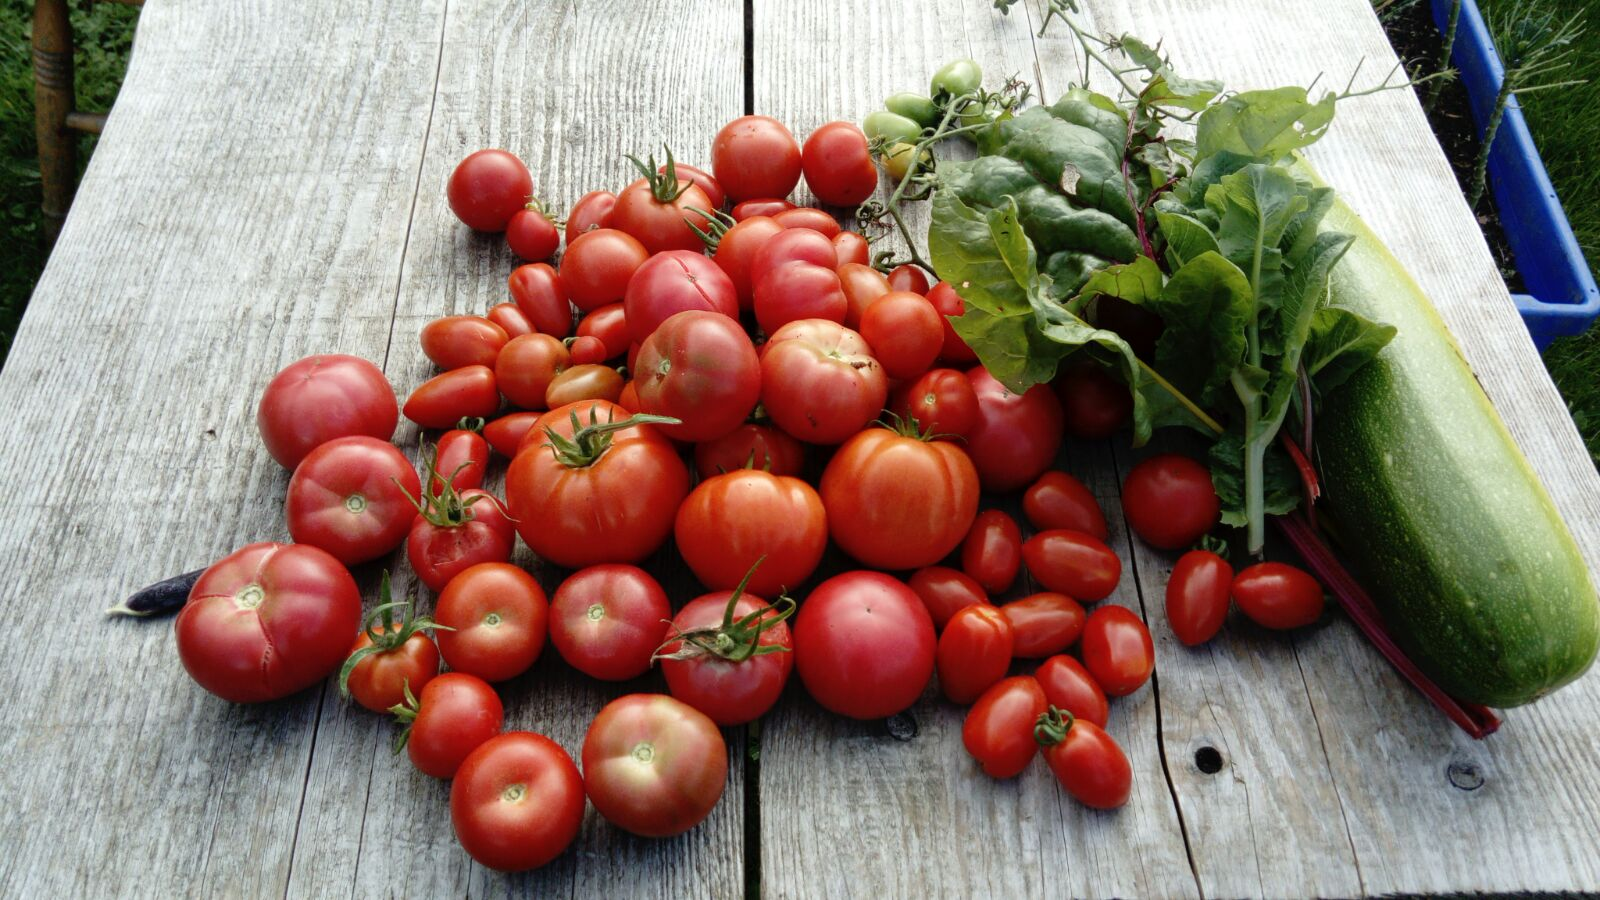 Local produce and vegetables